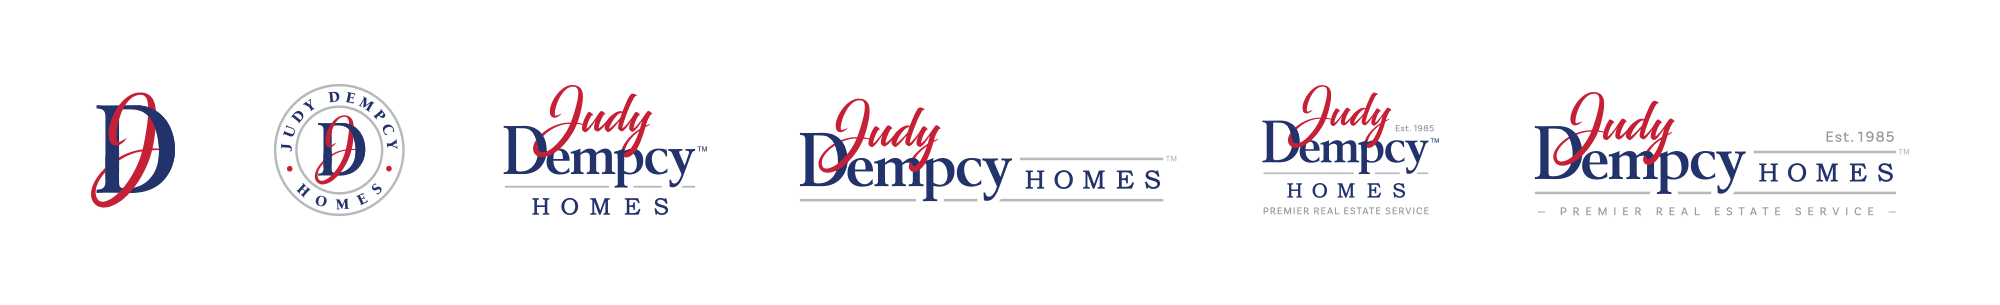 Judy Dempcy logo deliverables